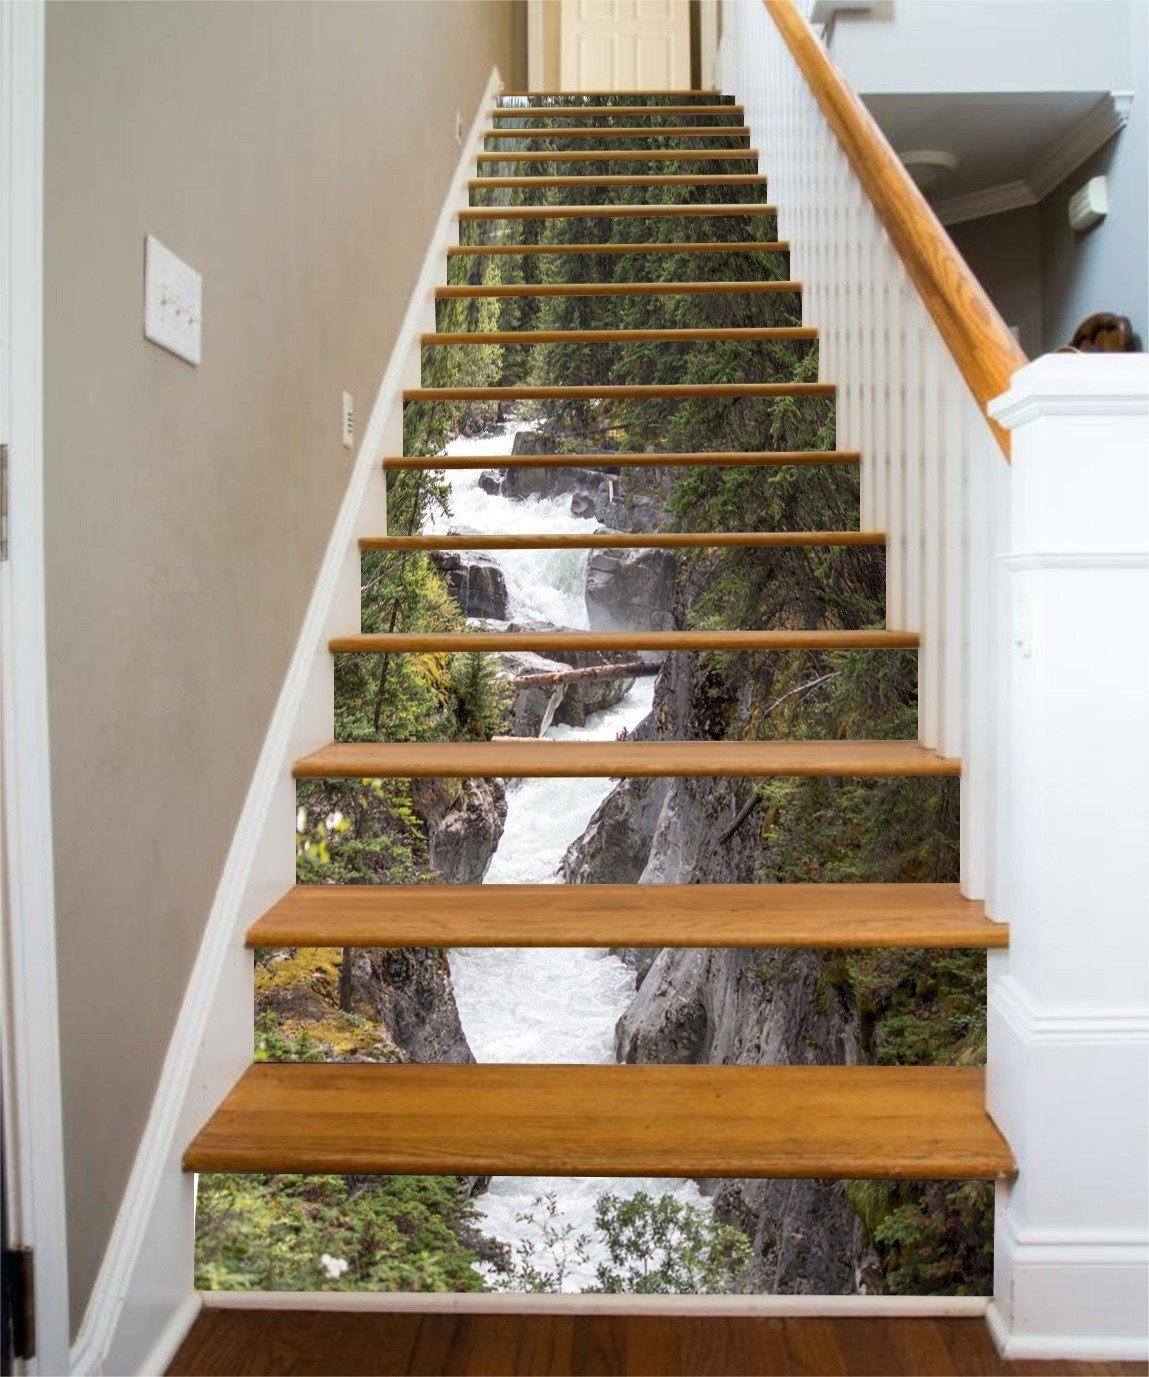 3D Maligne River Stair Risers